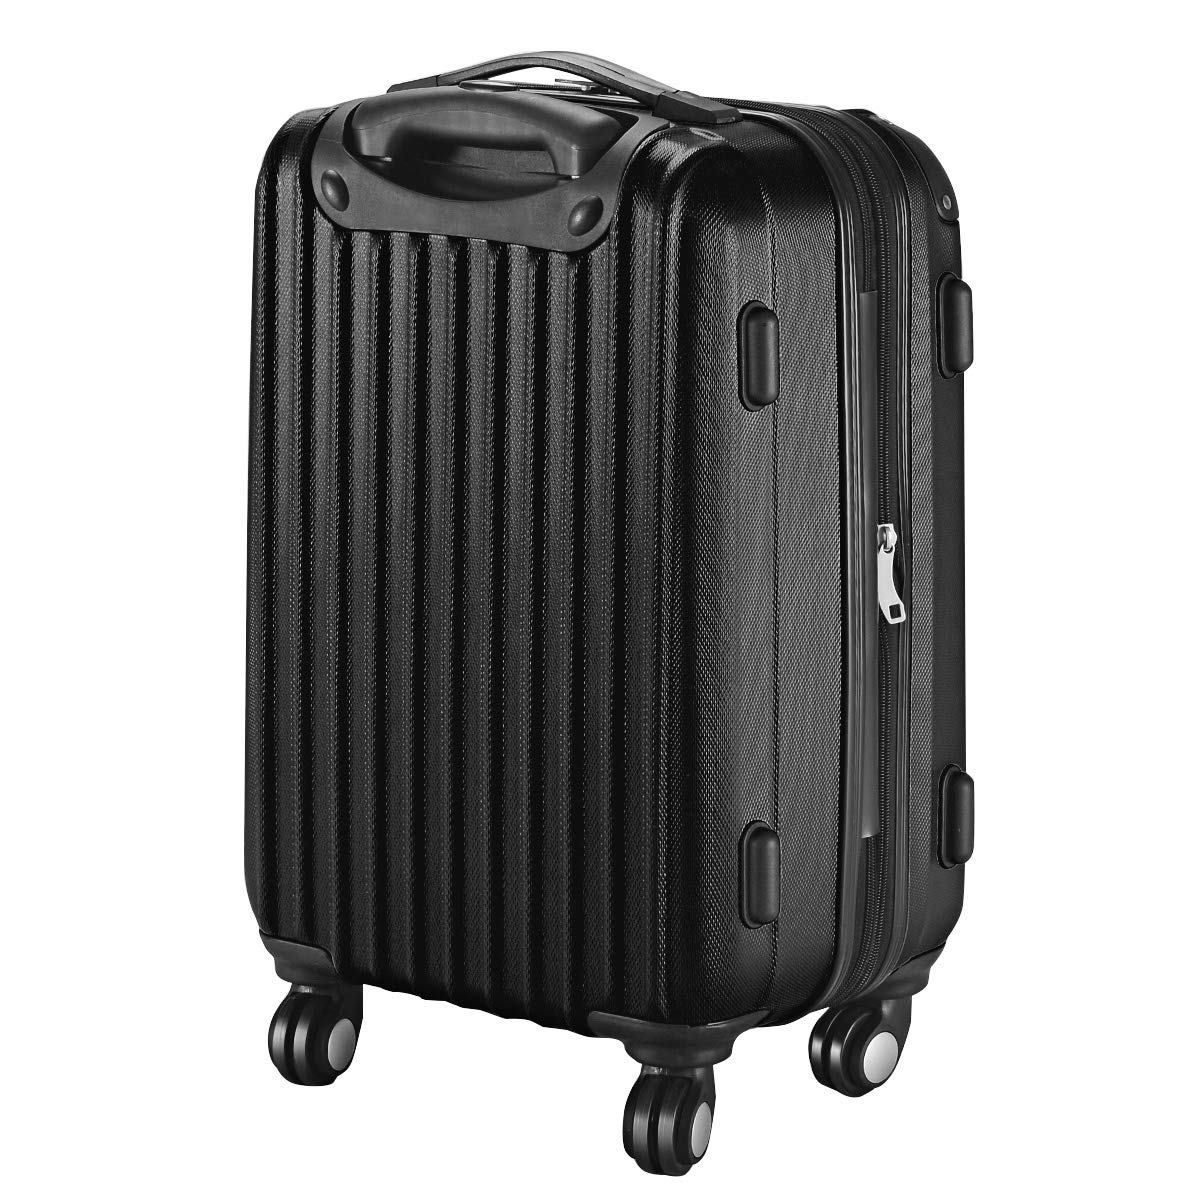 Goplus 20'' ABS Carry On Luggage Expandable Hardside Travel Bag Trolley Rolling Suitcase GLOBALWAY (Black) by Goplus (Image #8)